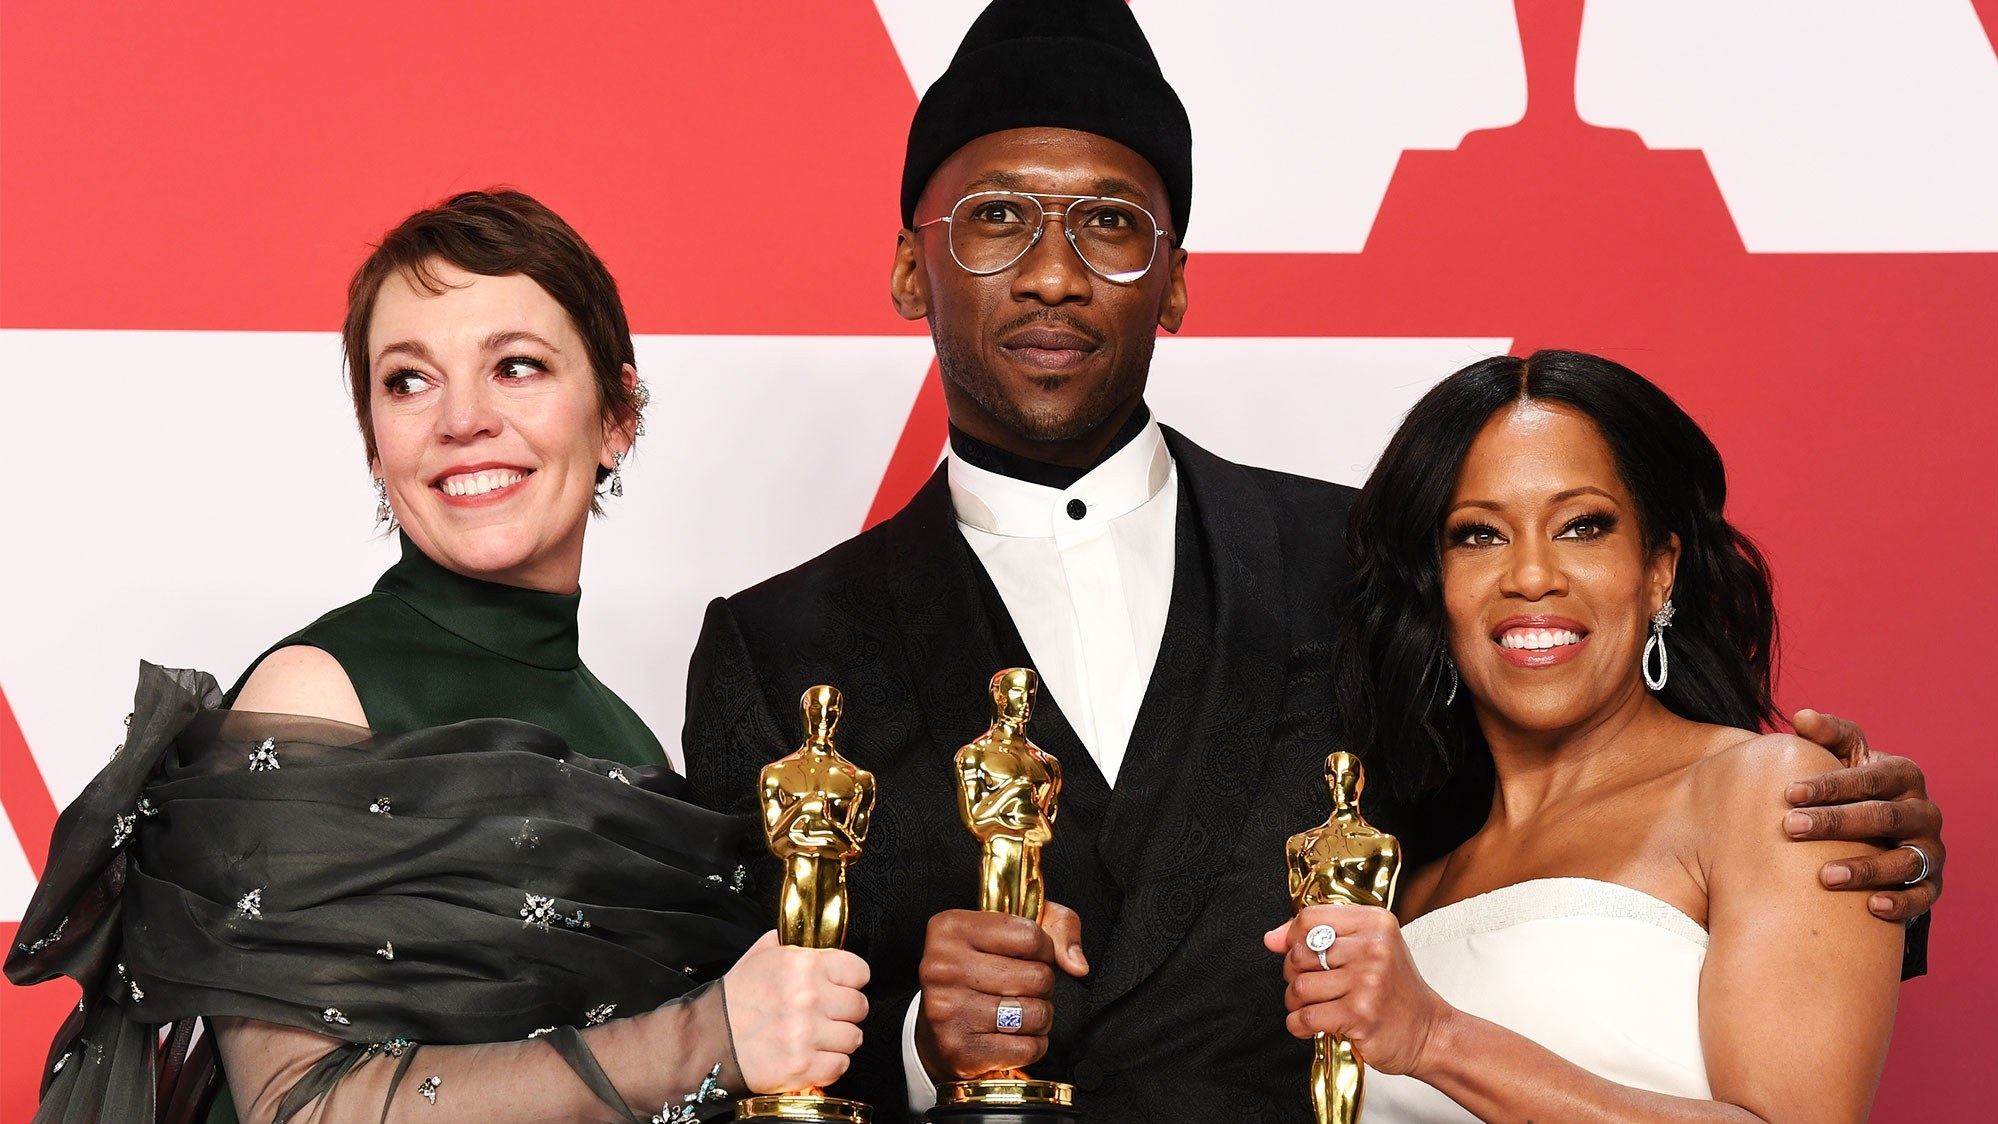 Oscars 2019: Green Book wins Best Picture, Colman is Best Actress